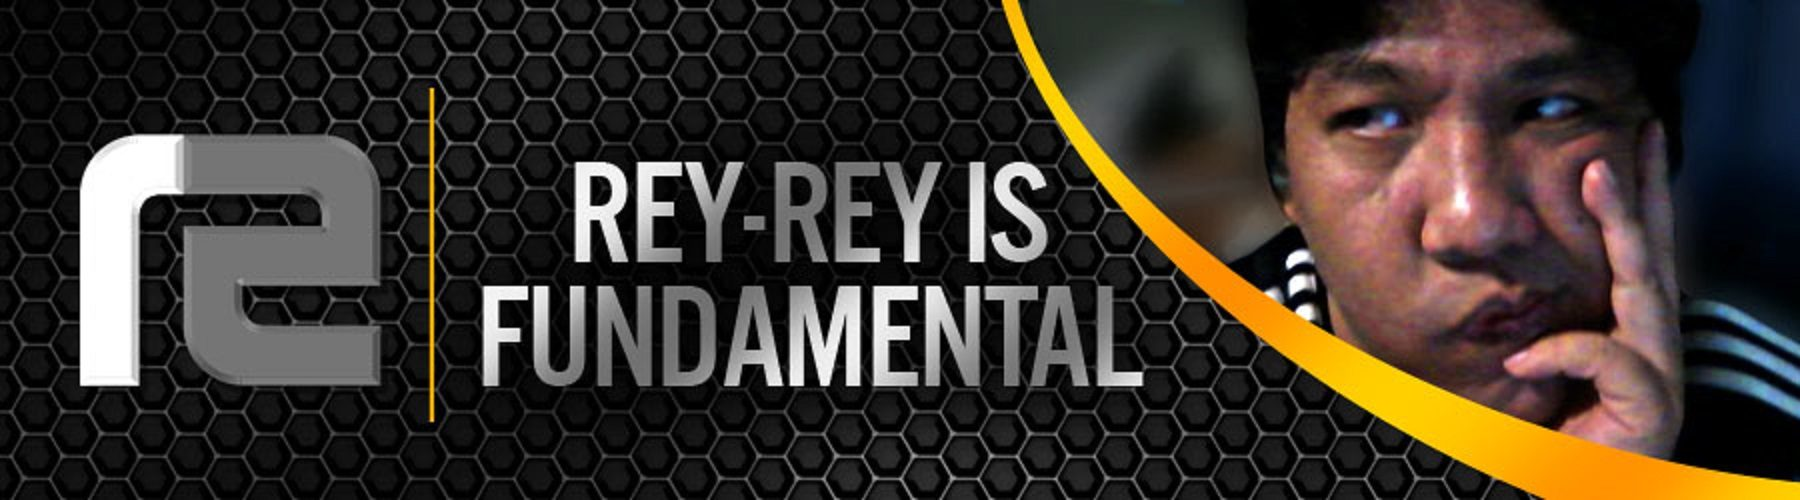 Rey-Rey Is Fundamental